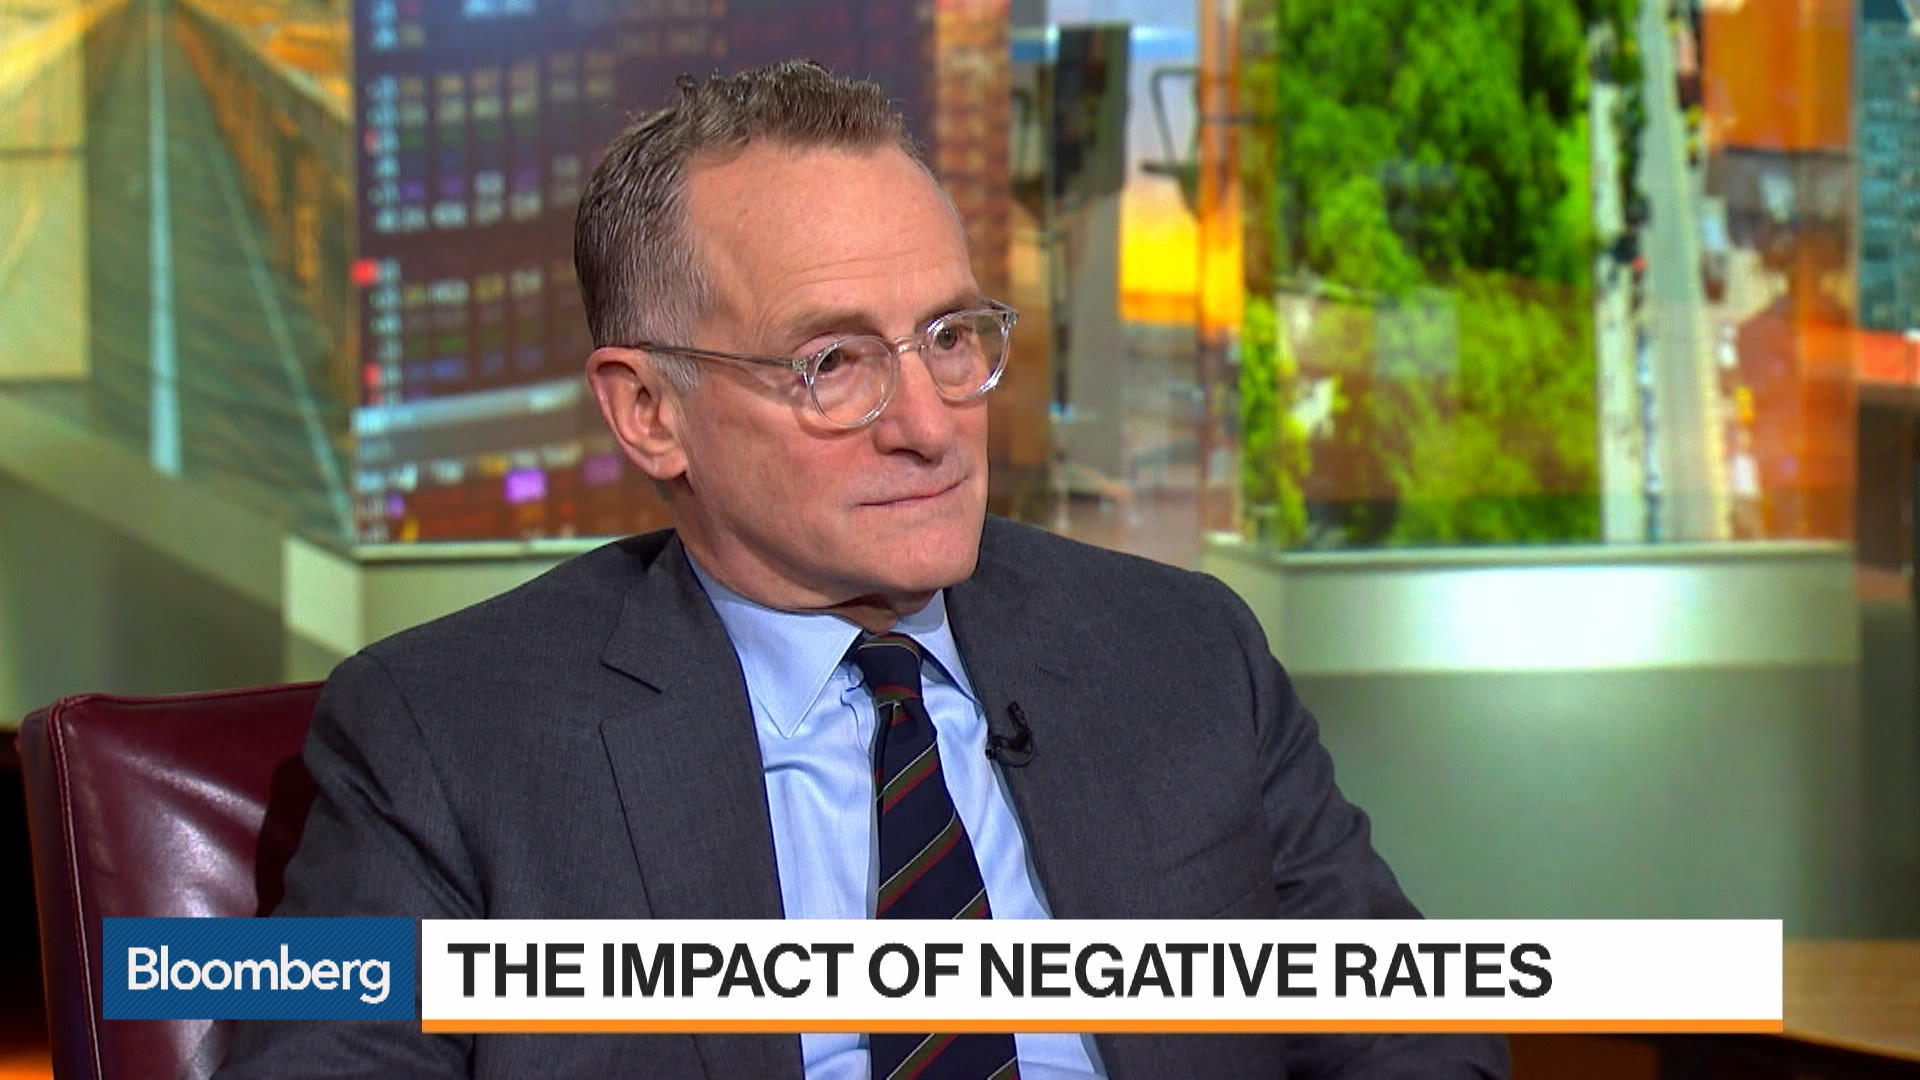 Oaktree Chairman Howard Marks on Negative Rates, Demanding Safety, U.S. Recession